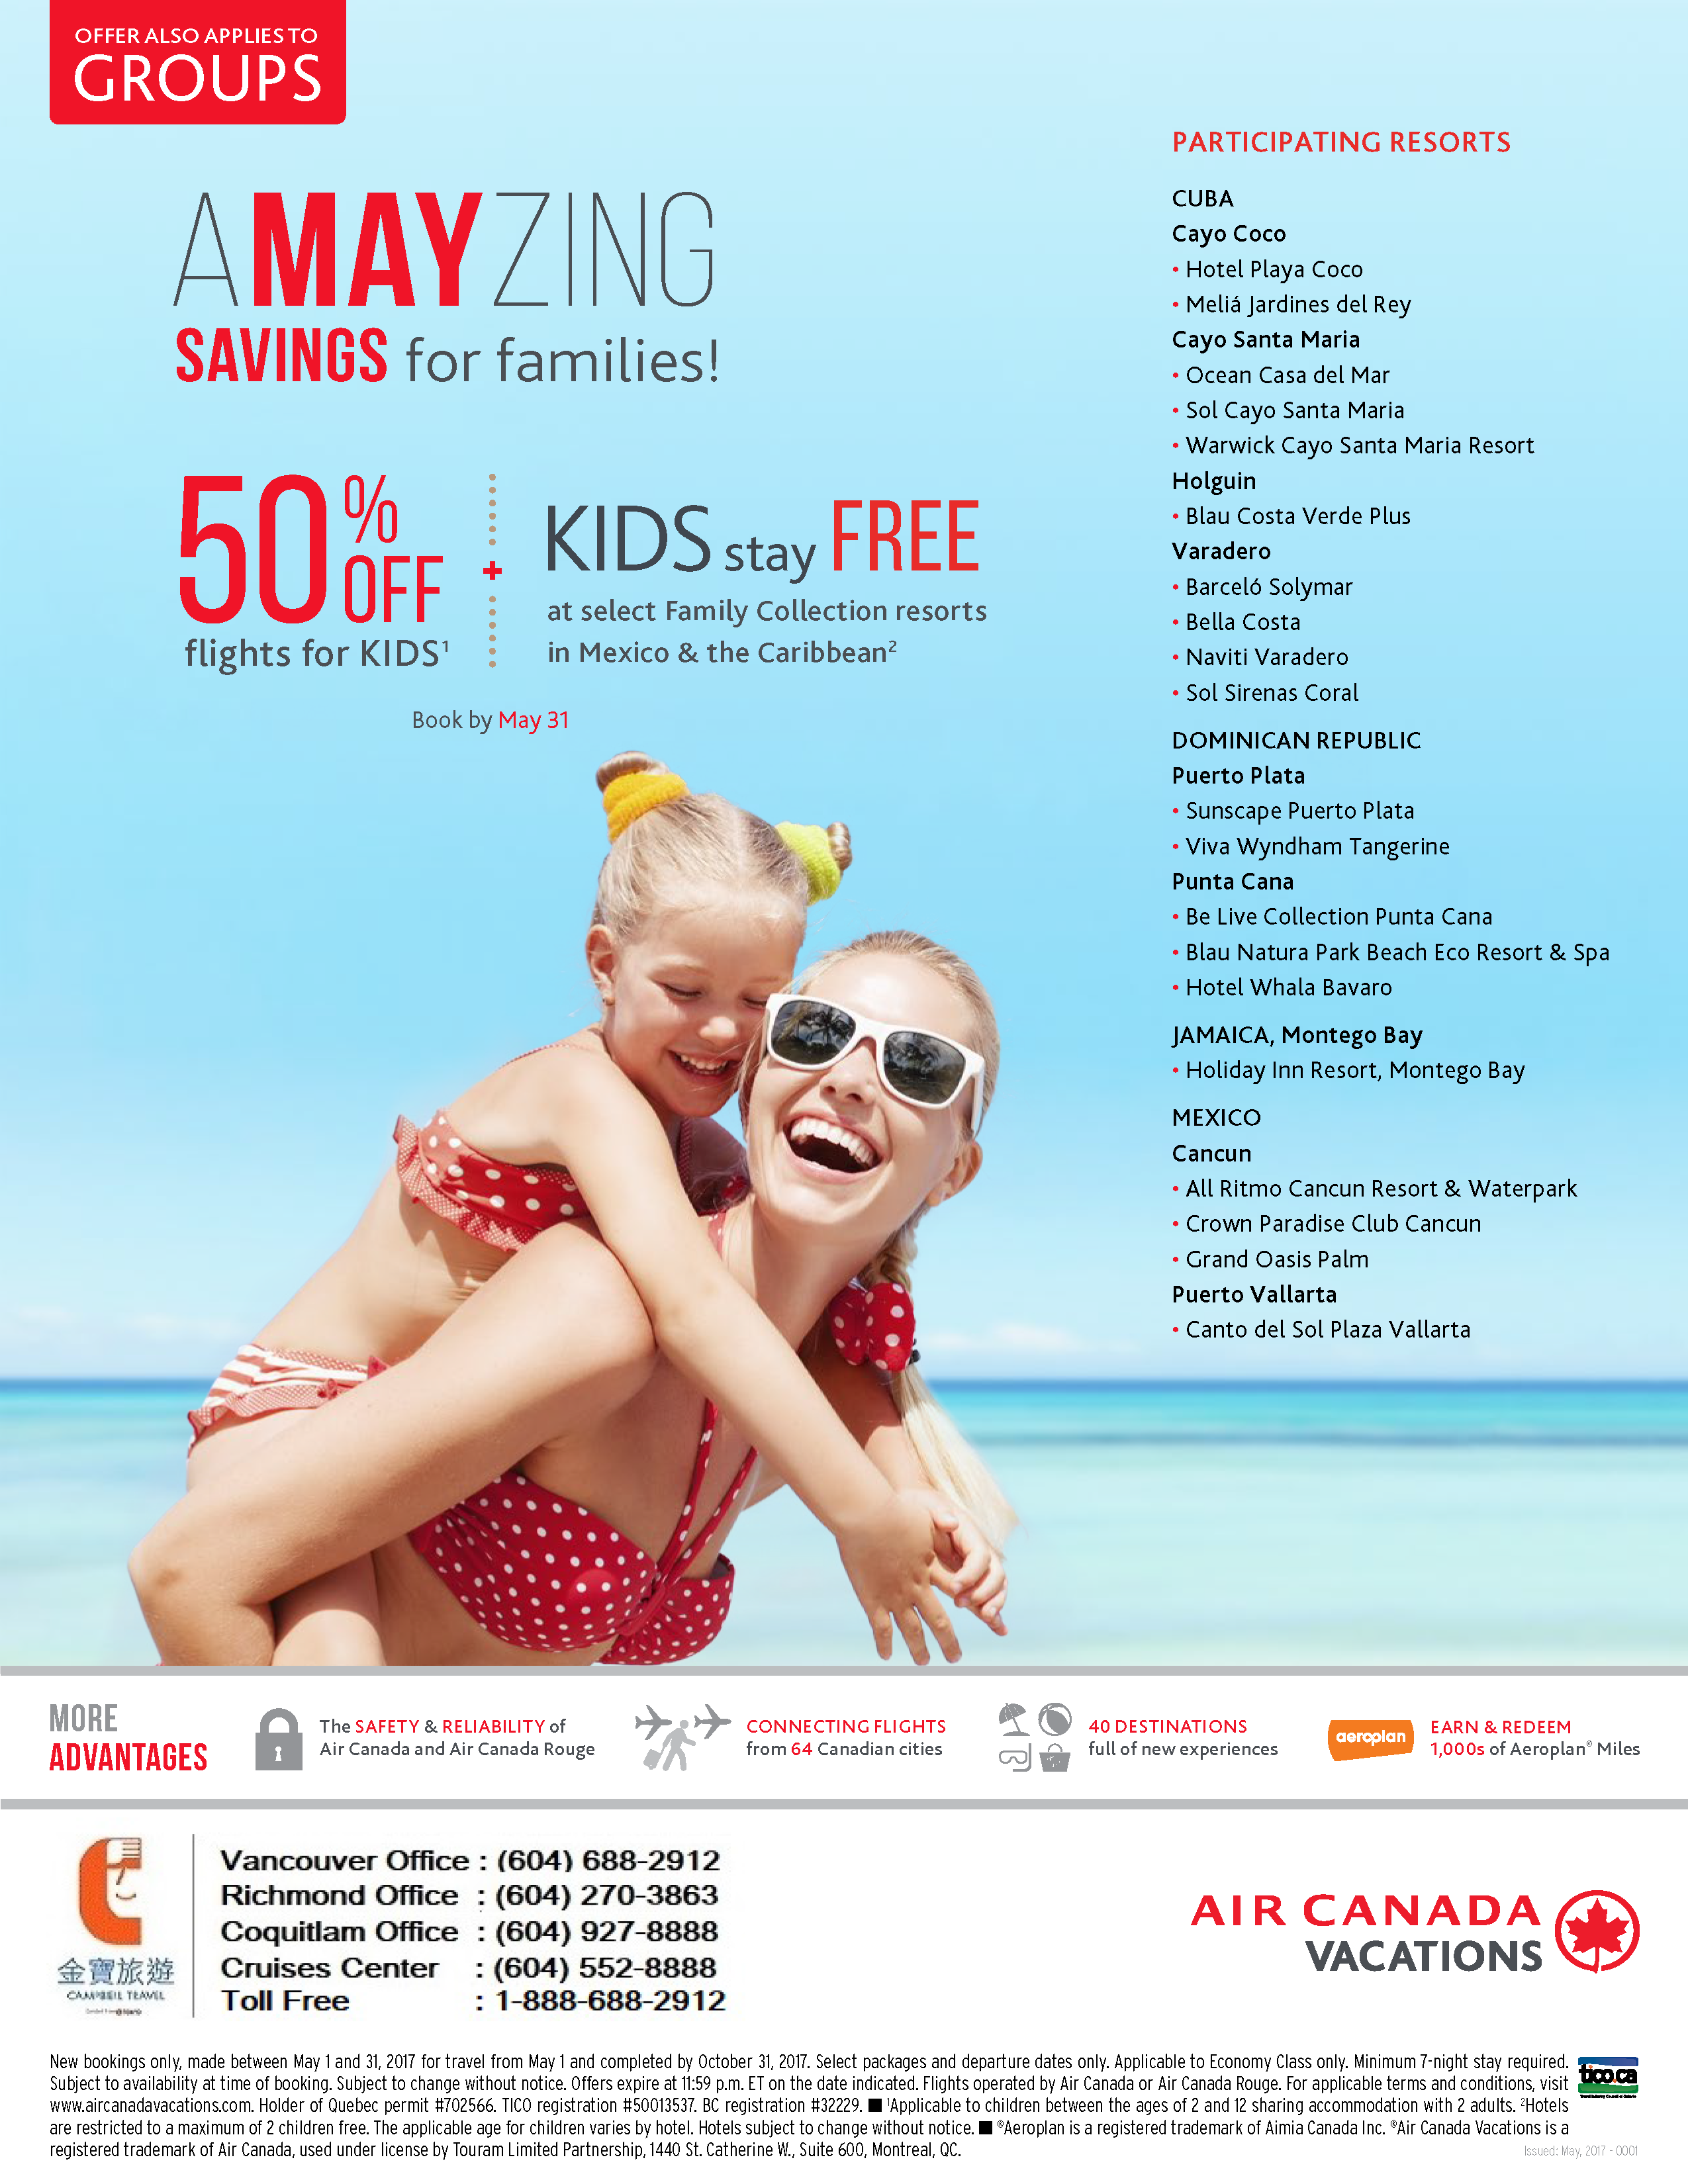 001-e-kids-fly-50-off-may-campaign_en